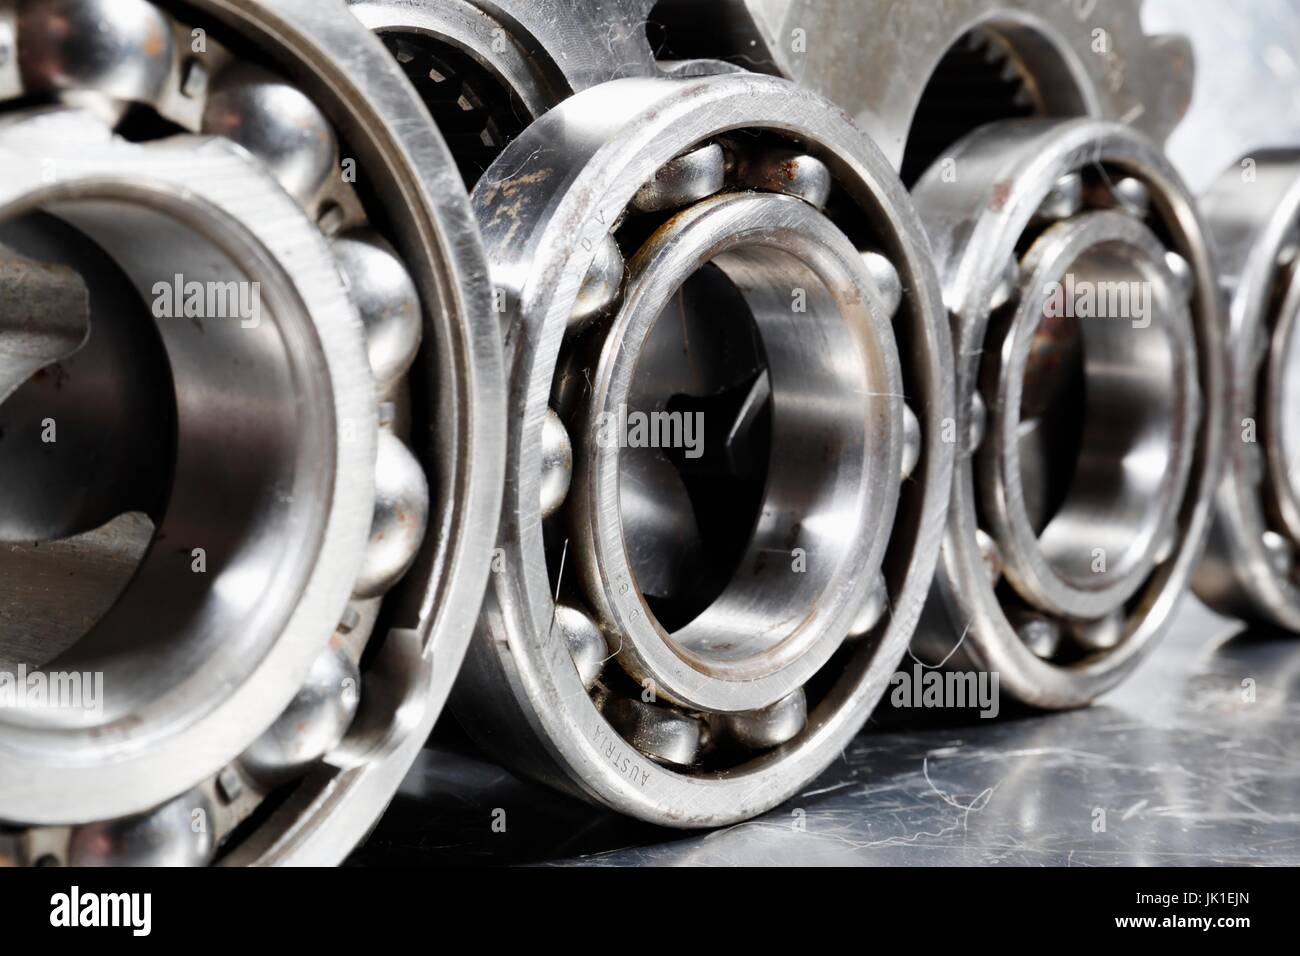 Ball-bearings and pinions made of titanium for the Aerospace industry. - Stock Image